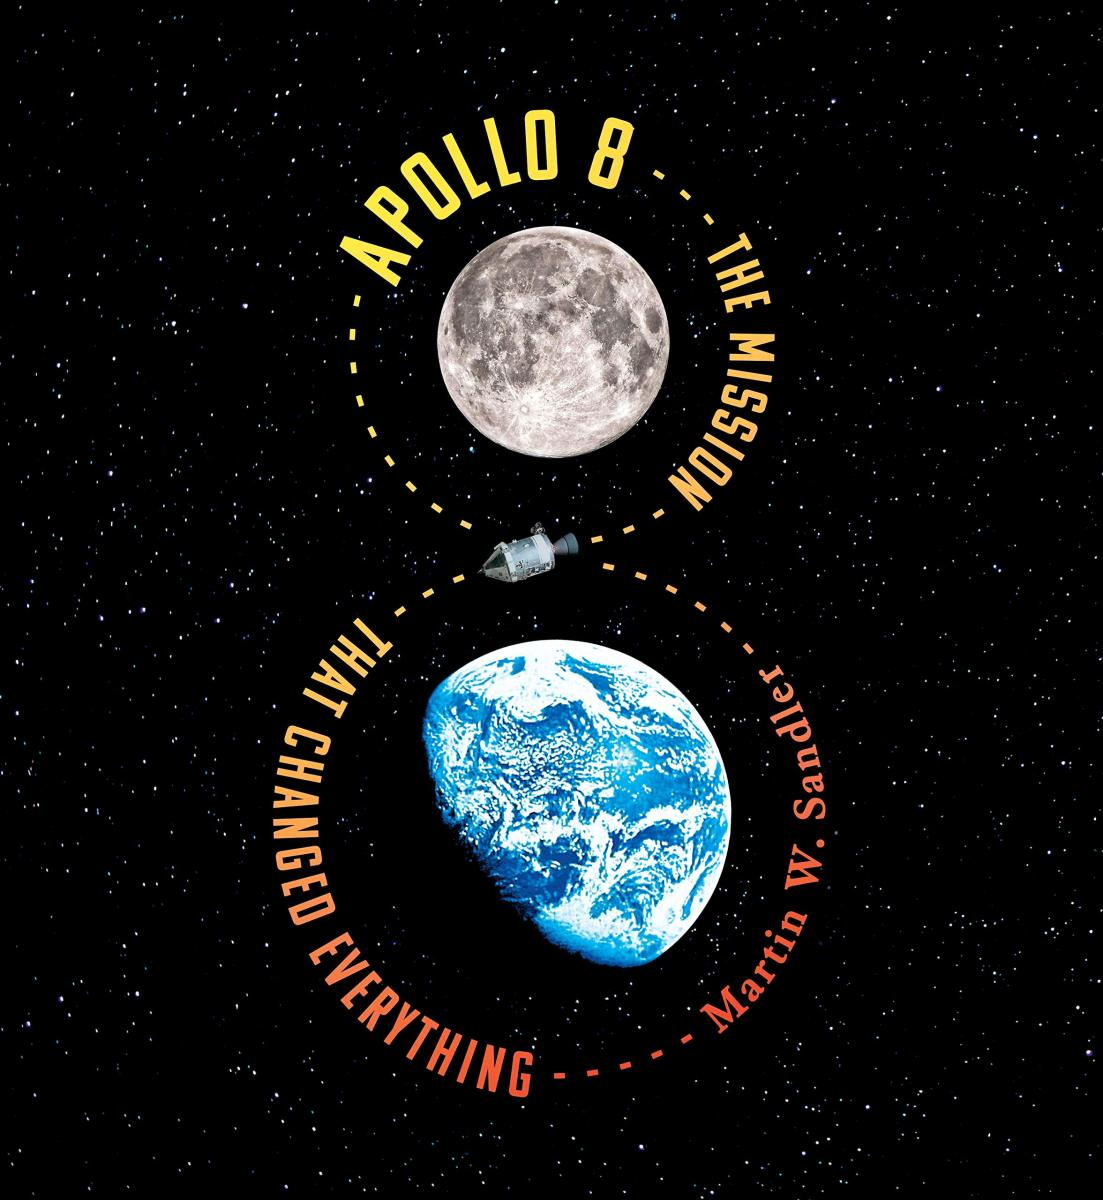 Apollo 8: The Mission that Changed Everything by Martin W. Sandler